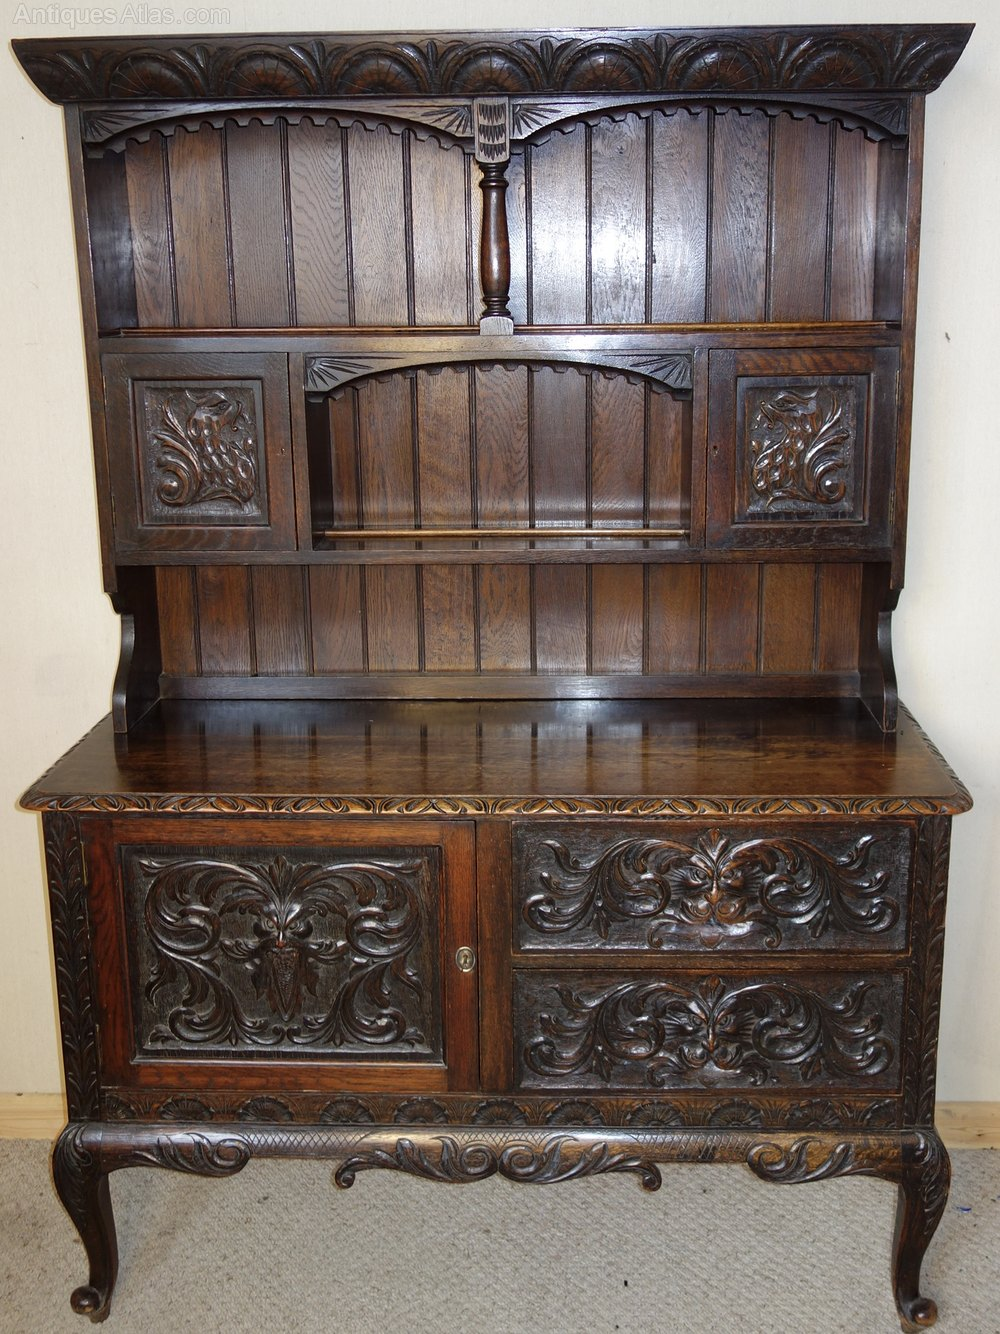 dating antique oak furniture Furniture sideboards & buffets brands sideboards & buffets antique sideboards and buffets add both 1890 flemish renaissance buffet carved oak lion fish.